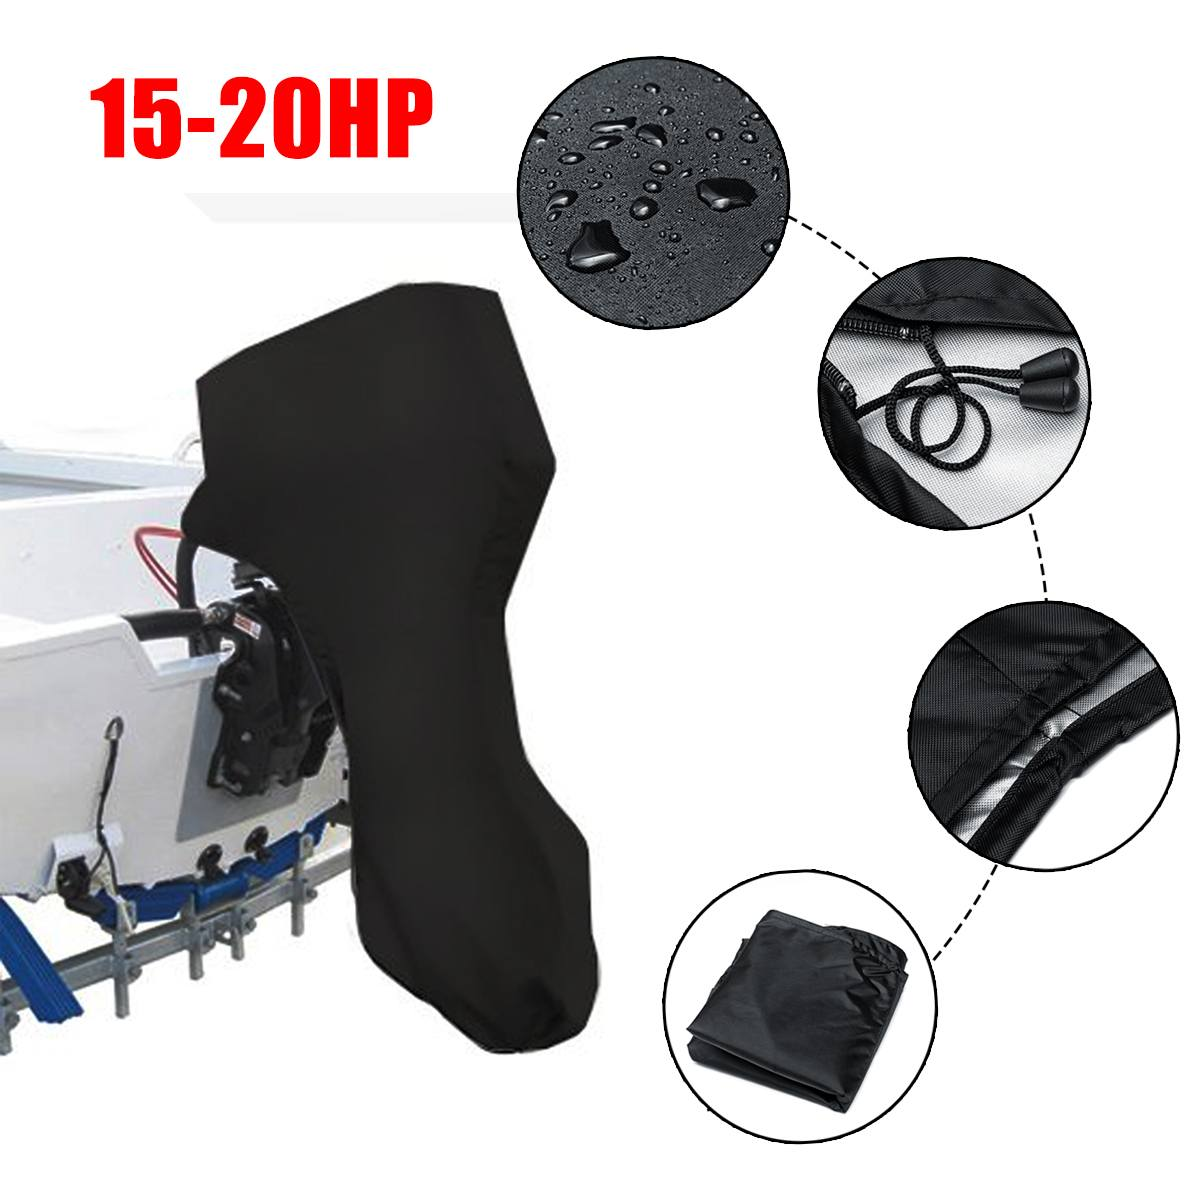 420D 125cm Boat Full Outboard Engine Protector Motor Cover for 15-20HP Boat Motors Waterproof image